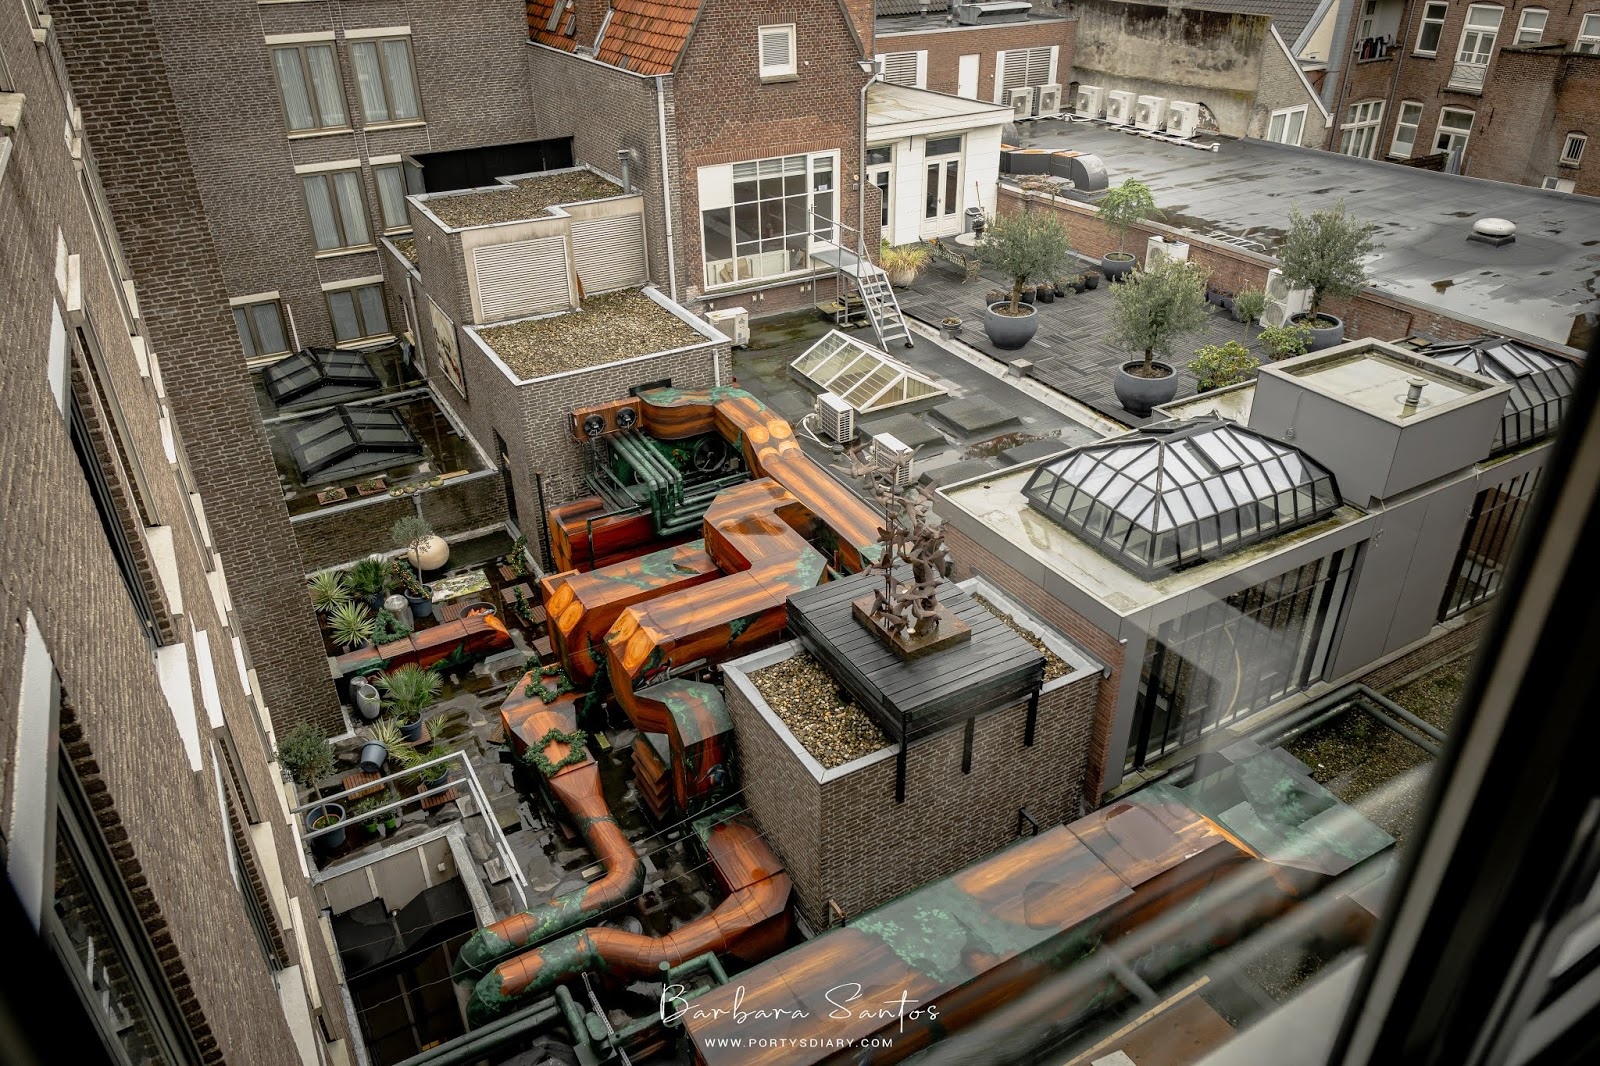 Artsy room view, Den Bosch. A weekend in Den Bosch, the Netherlands. A trip diary of how to spend a weekend in this Dutch city.